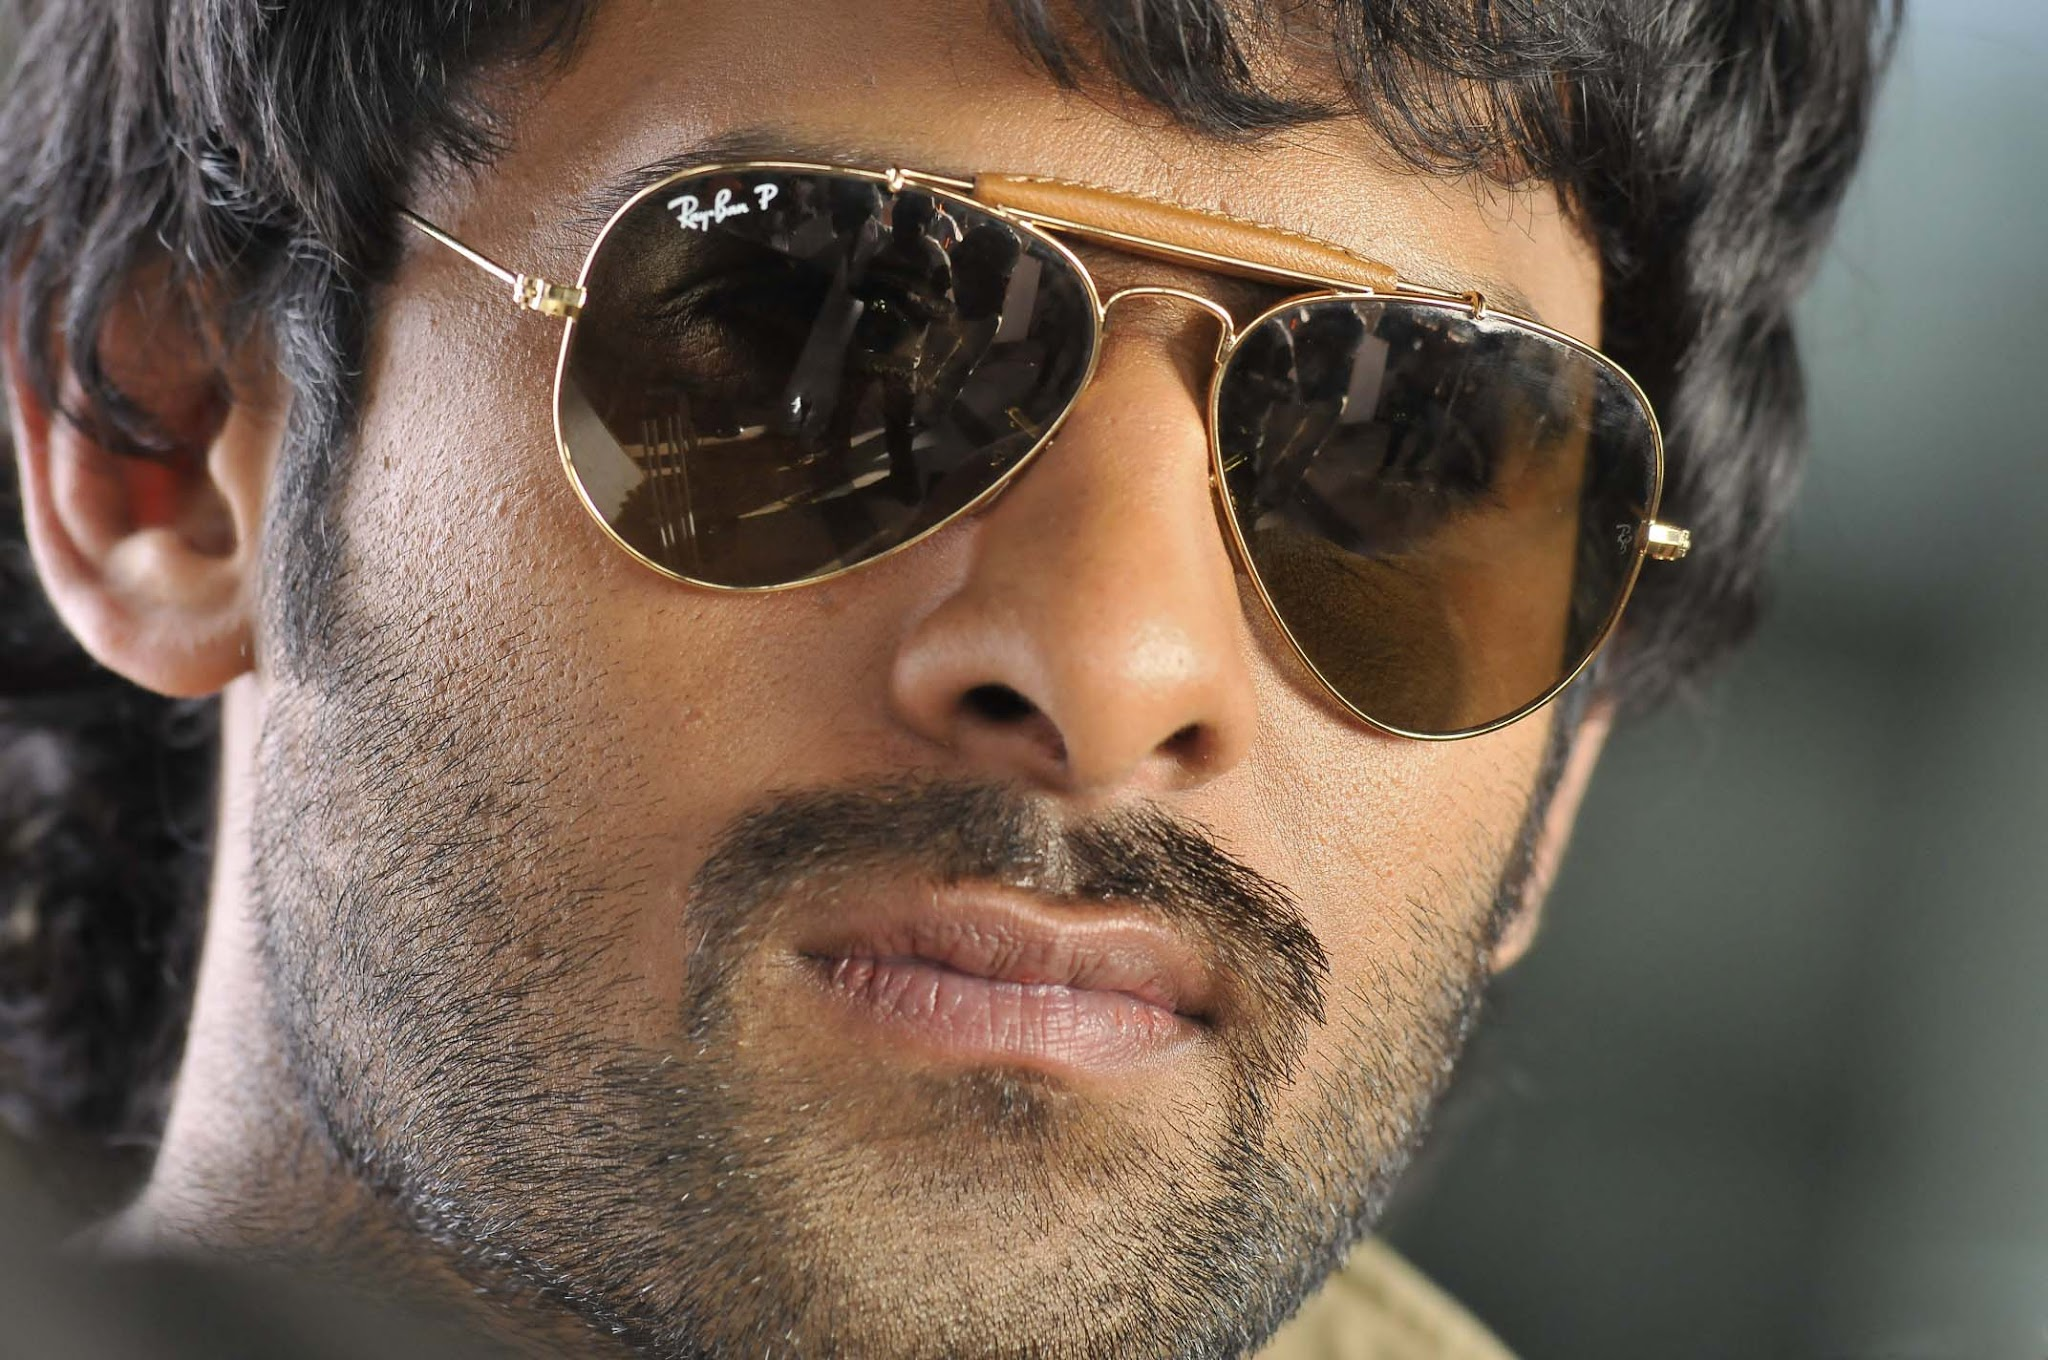 Prabhas Rebel New Stills Wallpapers Ultra Hd 2000